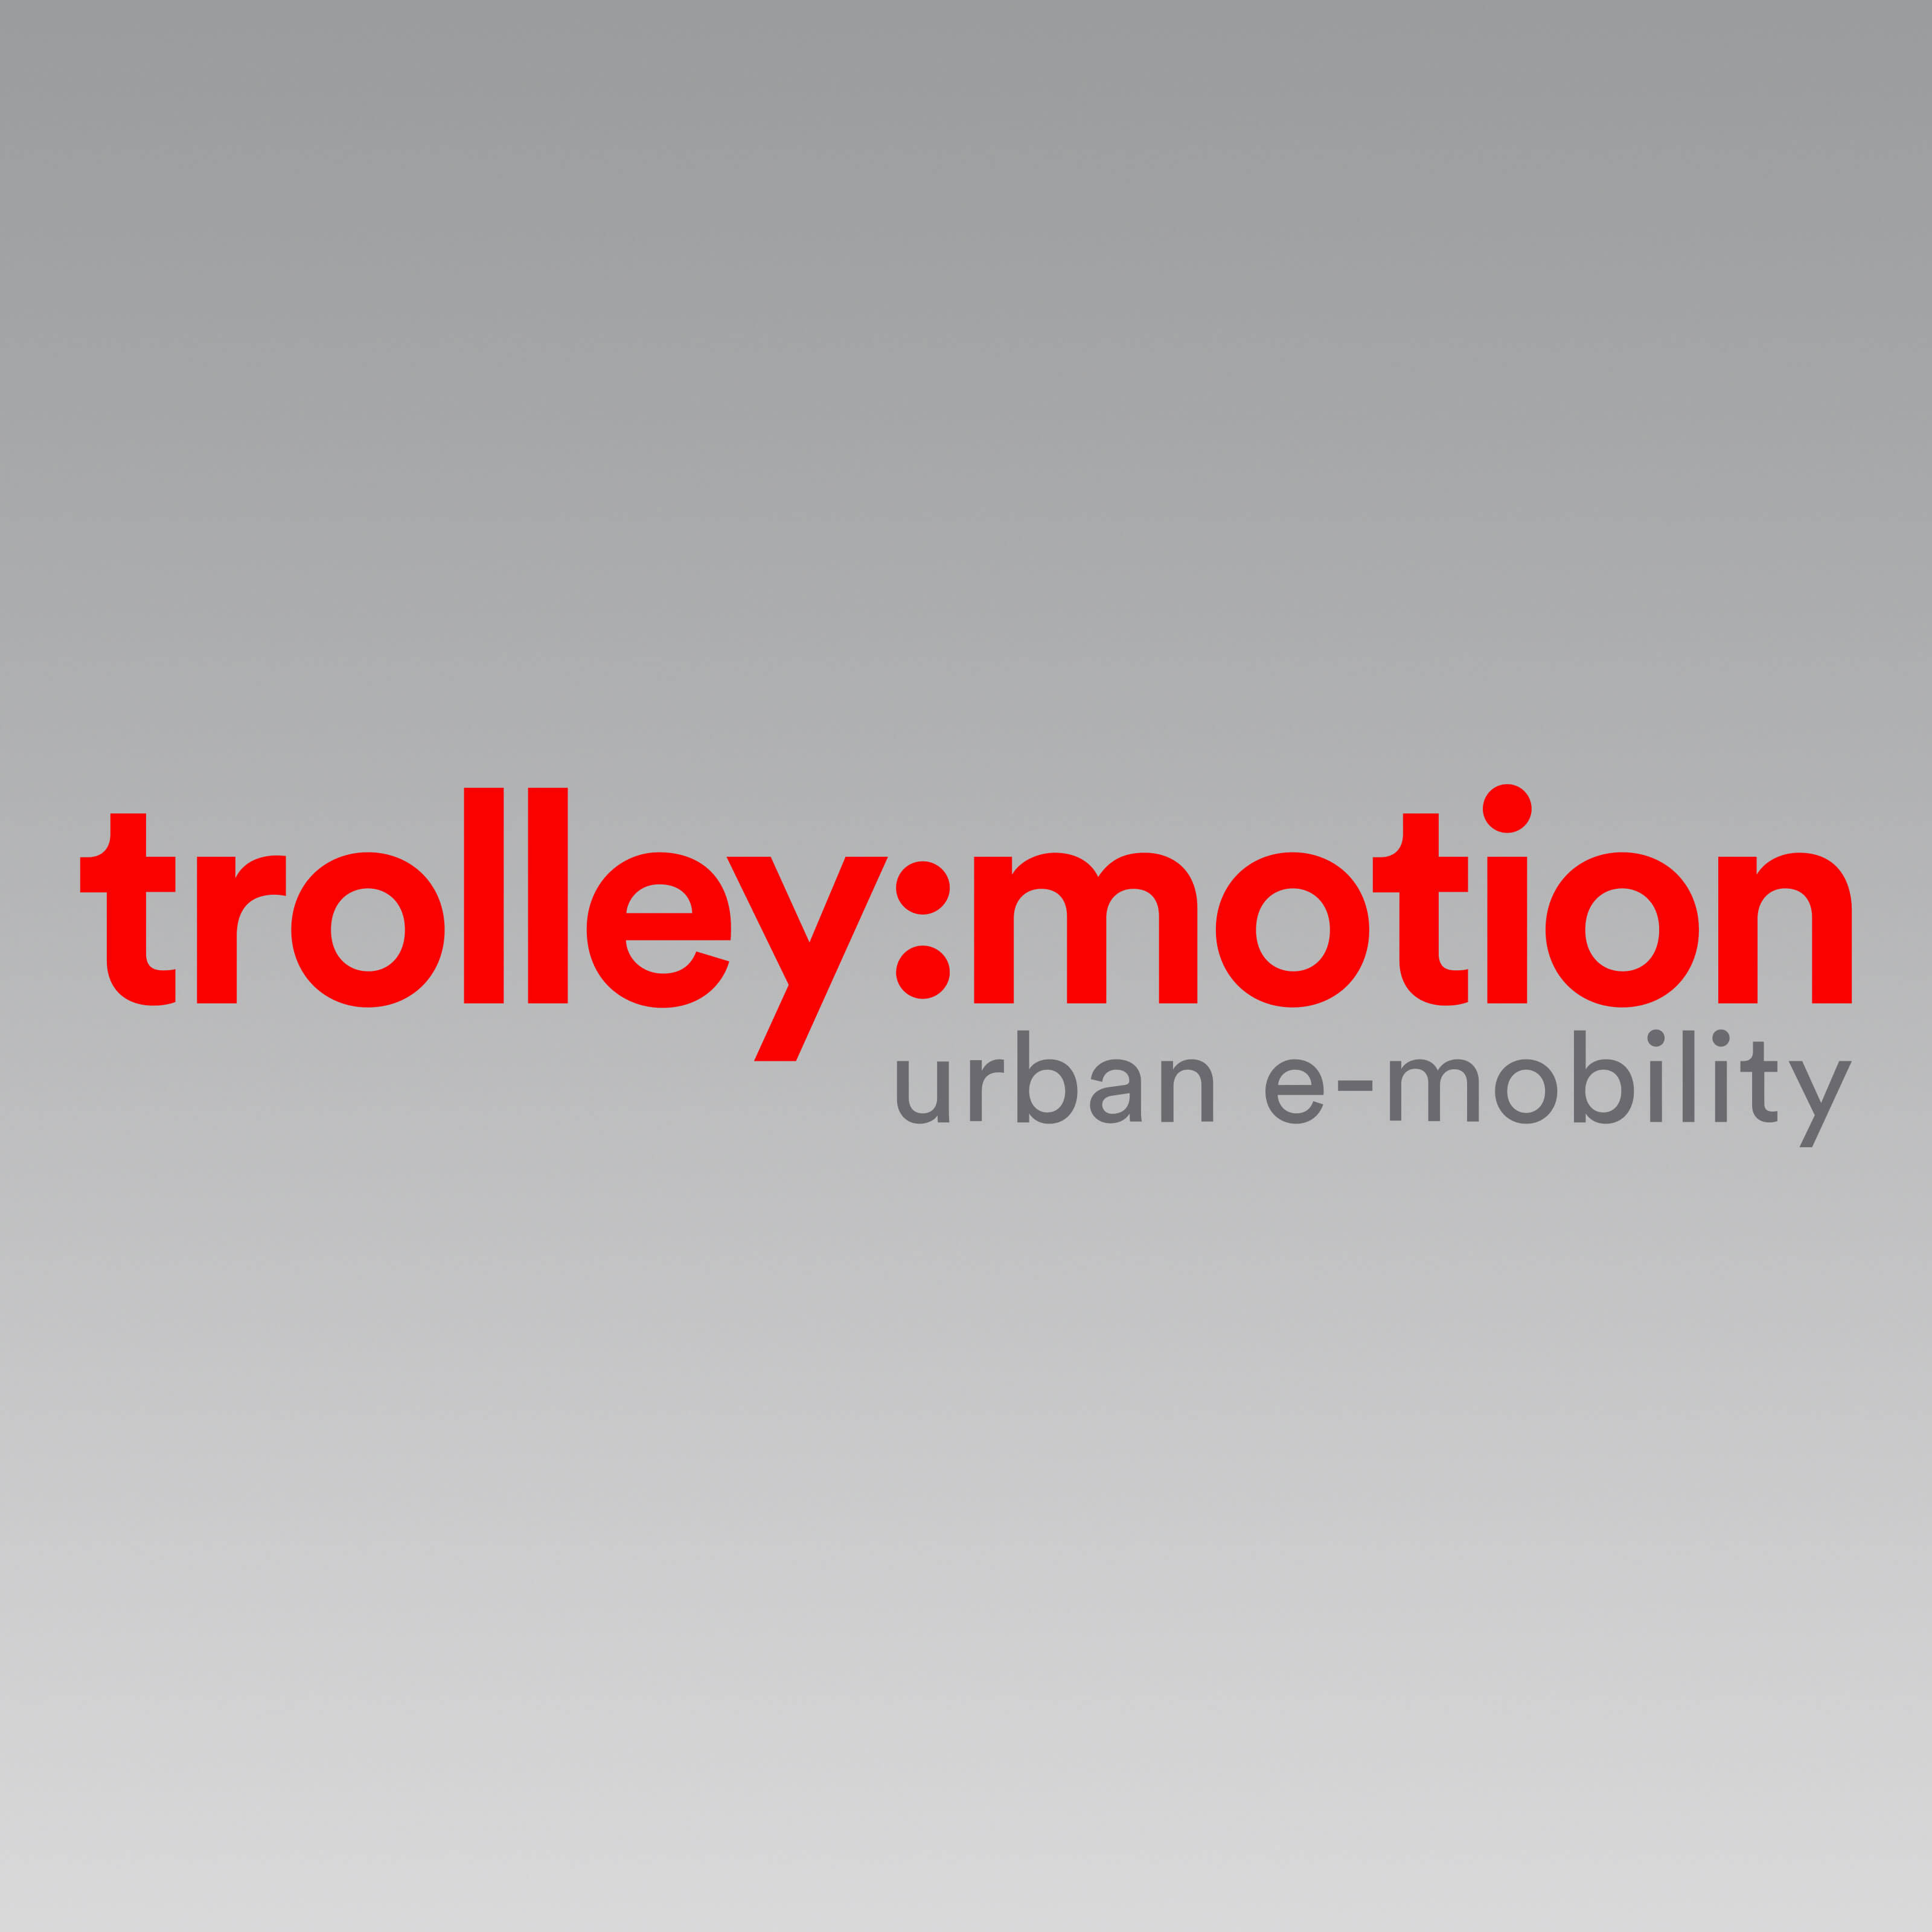 trolley:motion Logo